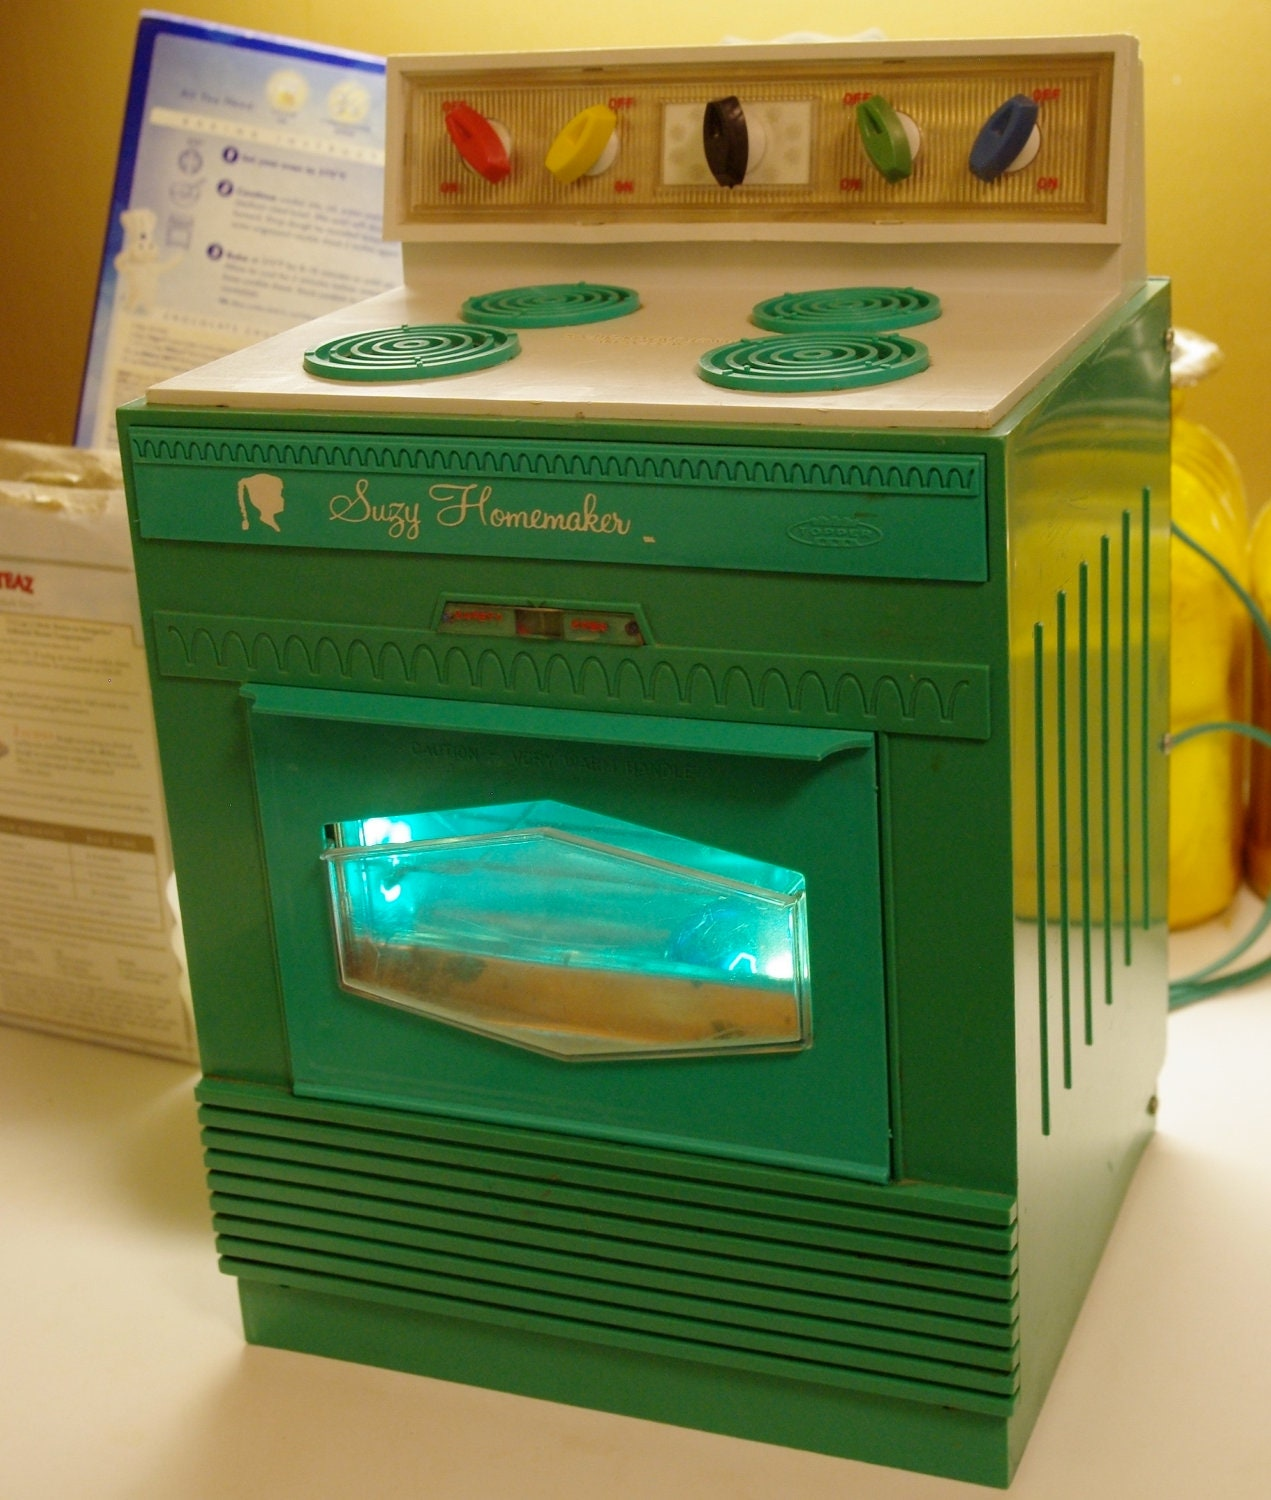 60s SUZY HOMEMAKER OVEN Retro Topper Toy Turquoise Light Up